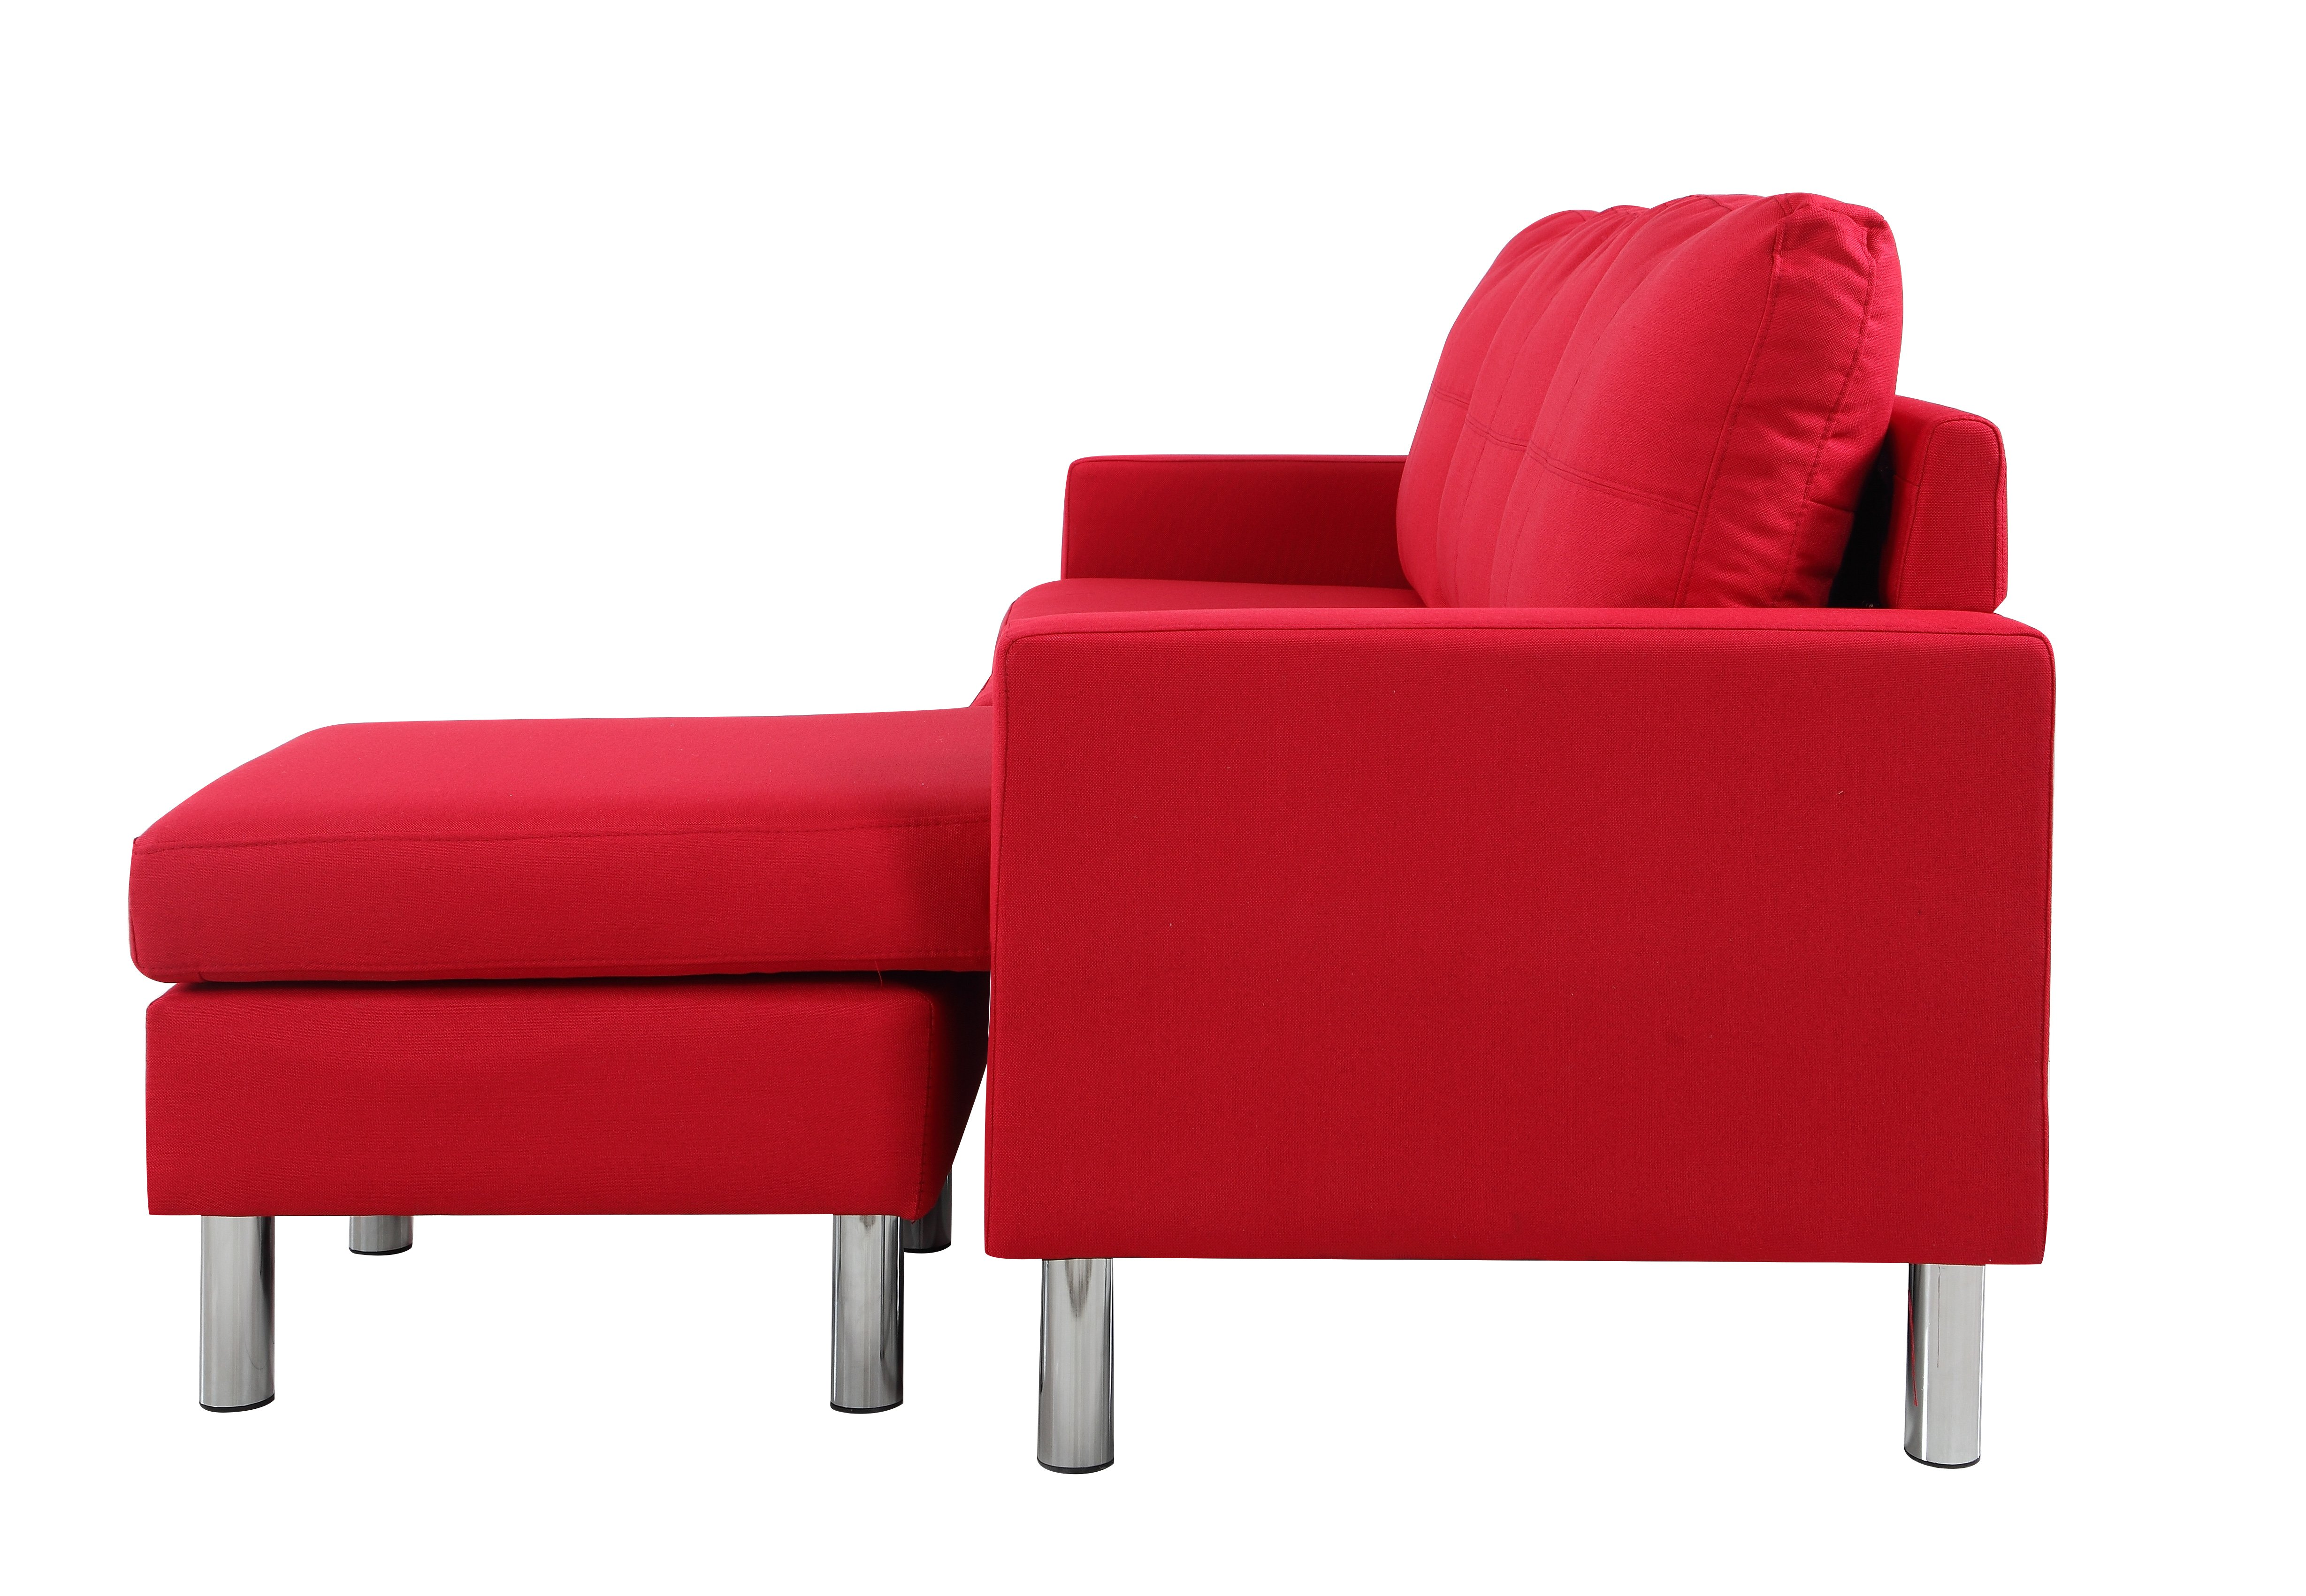 Modern-Living-Reversible-Linen-Fabric-Sectional-Sofa-Small-Space-Red thumbnail 4